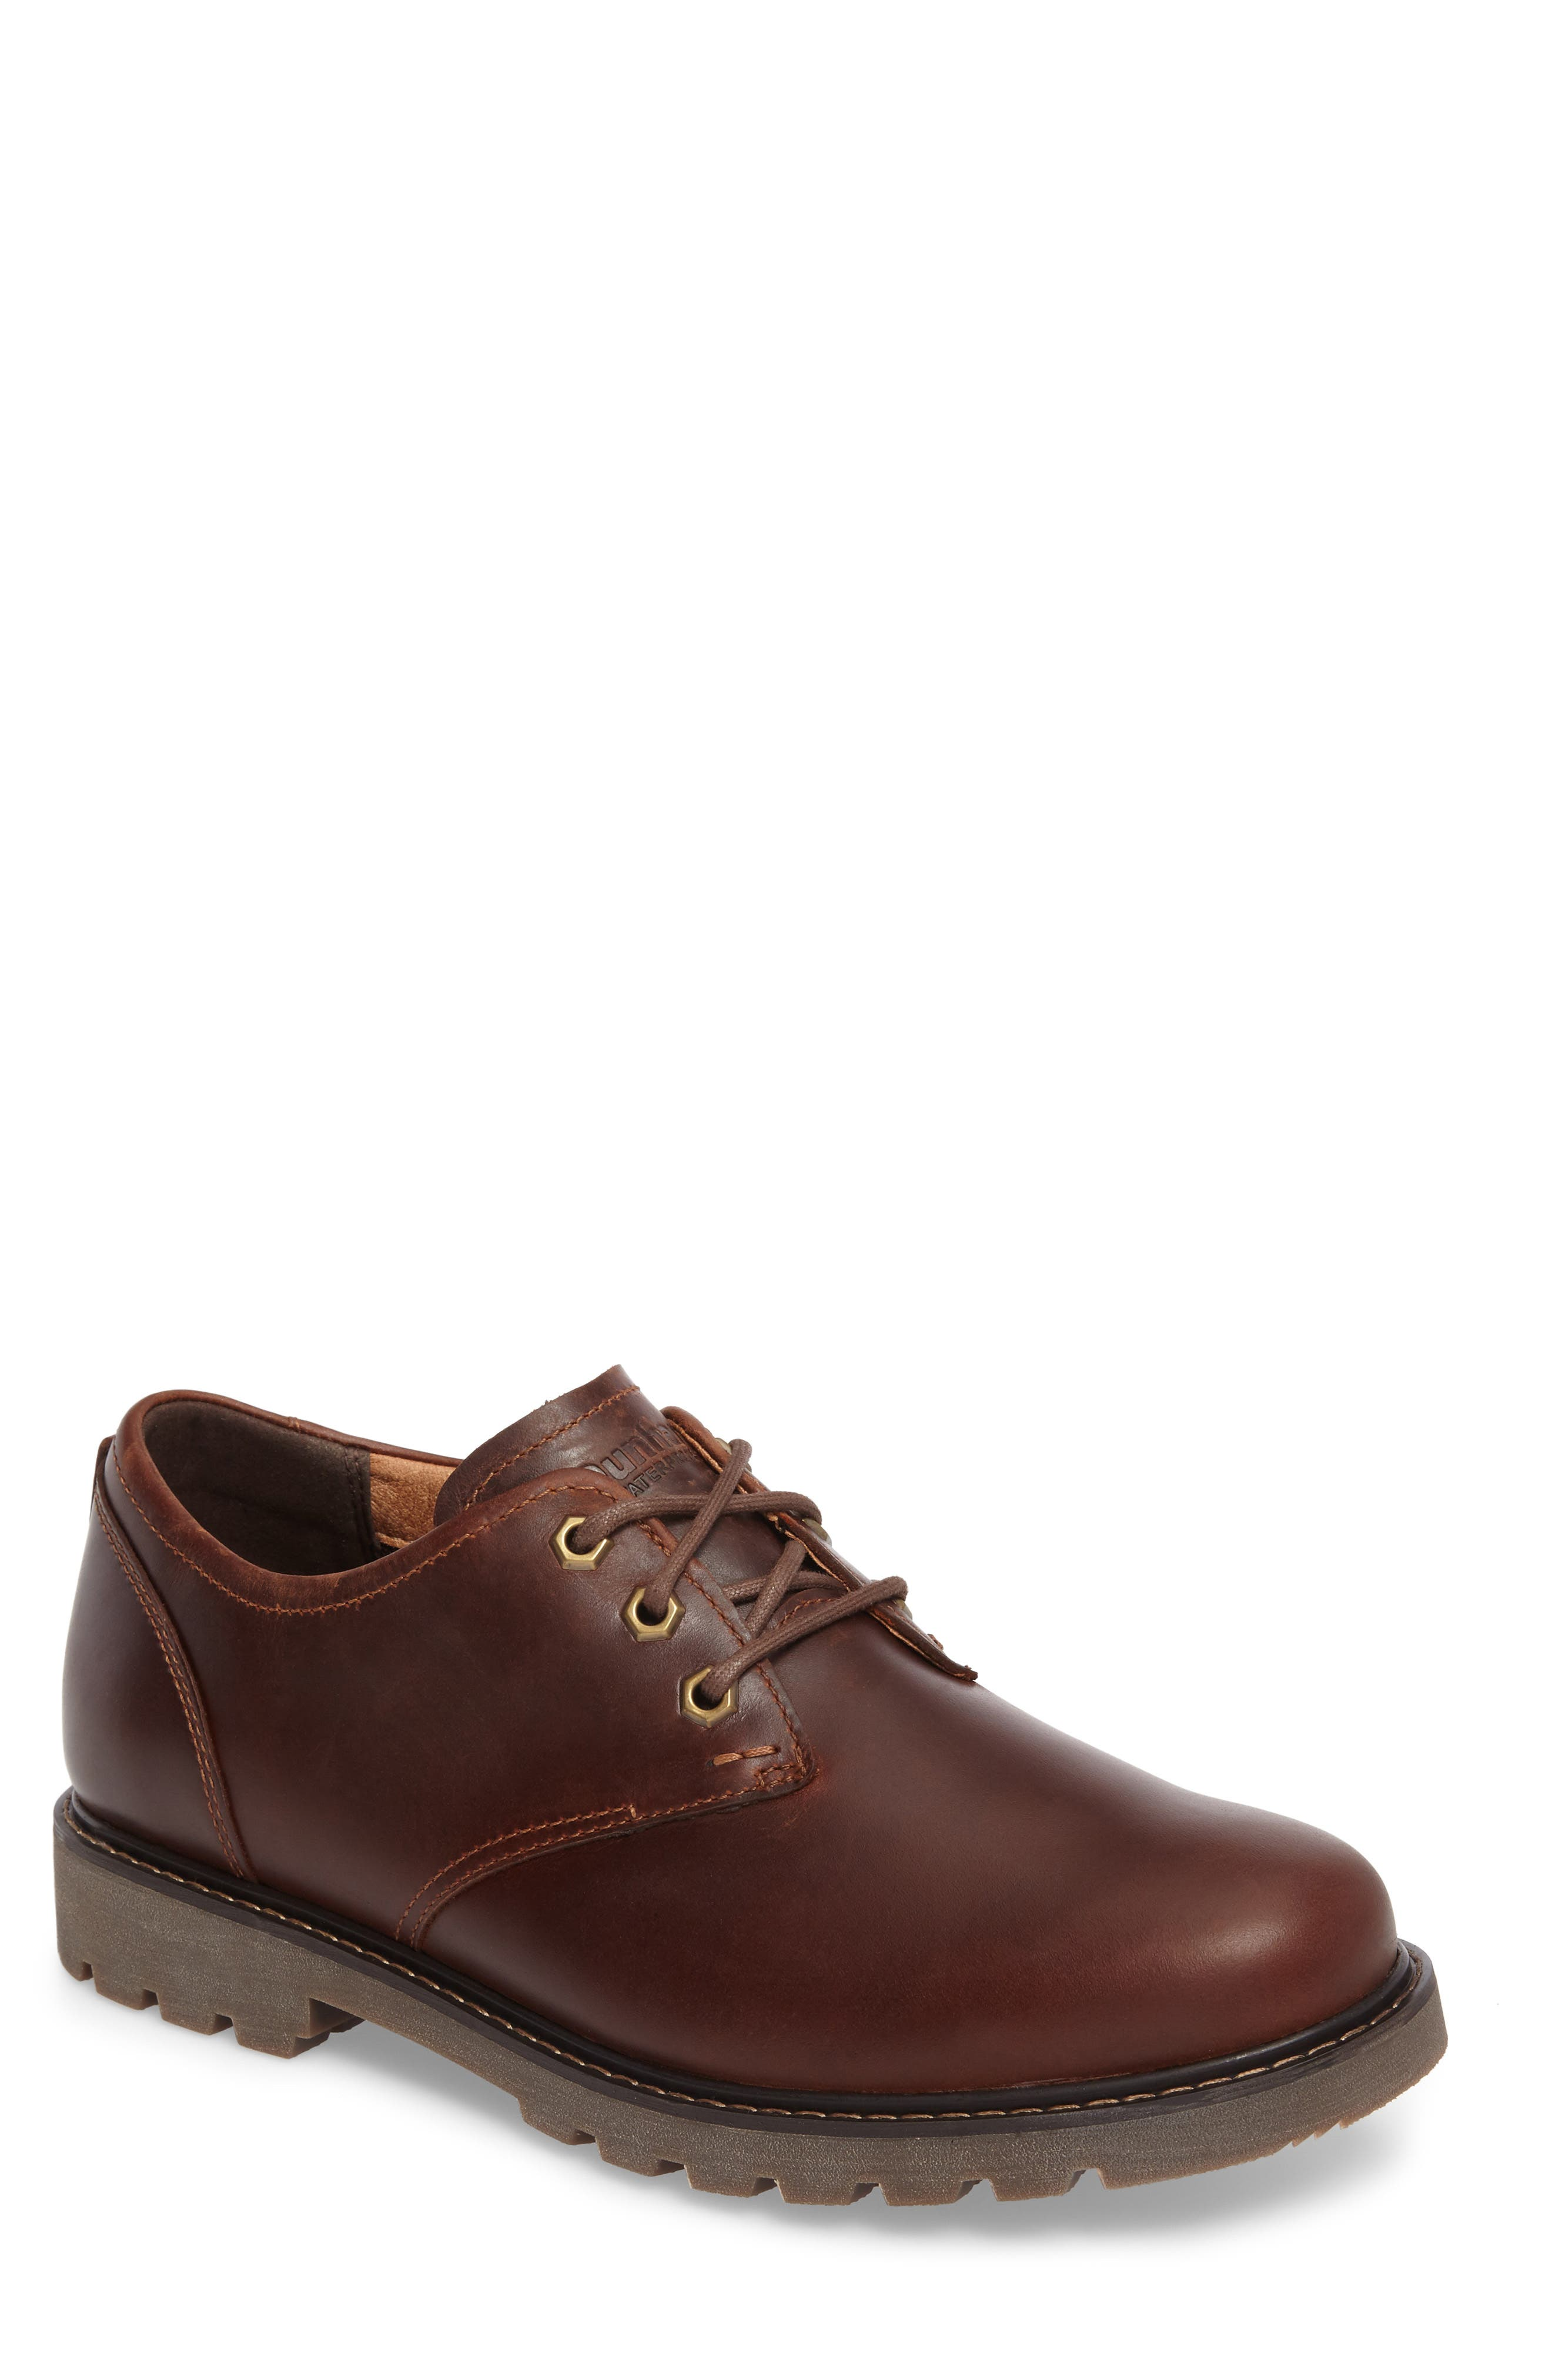 Main Image - Dunham Royalton Plain Toe Derby (Men)